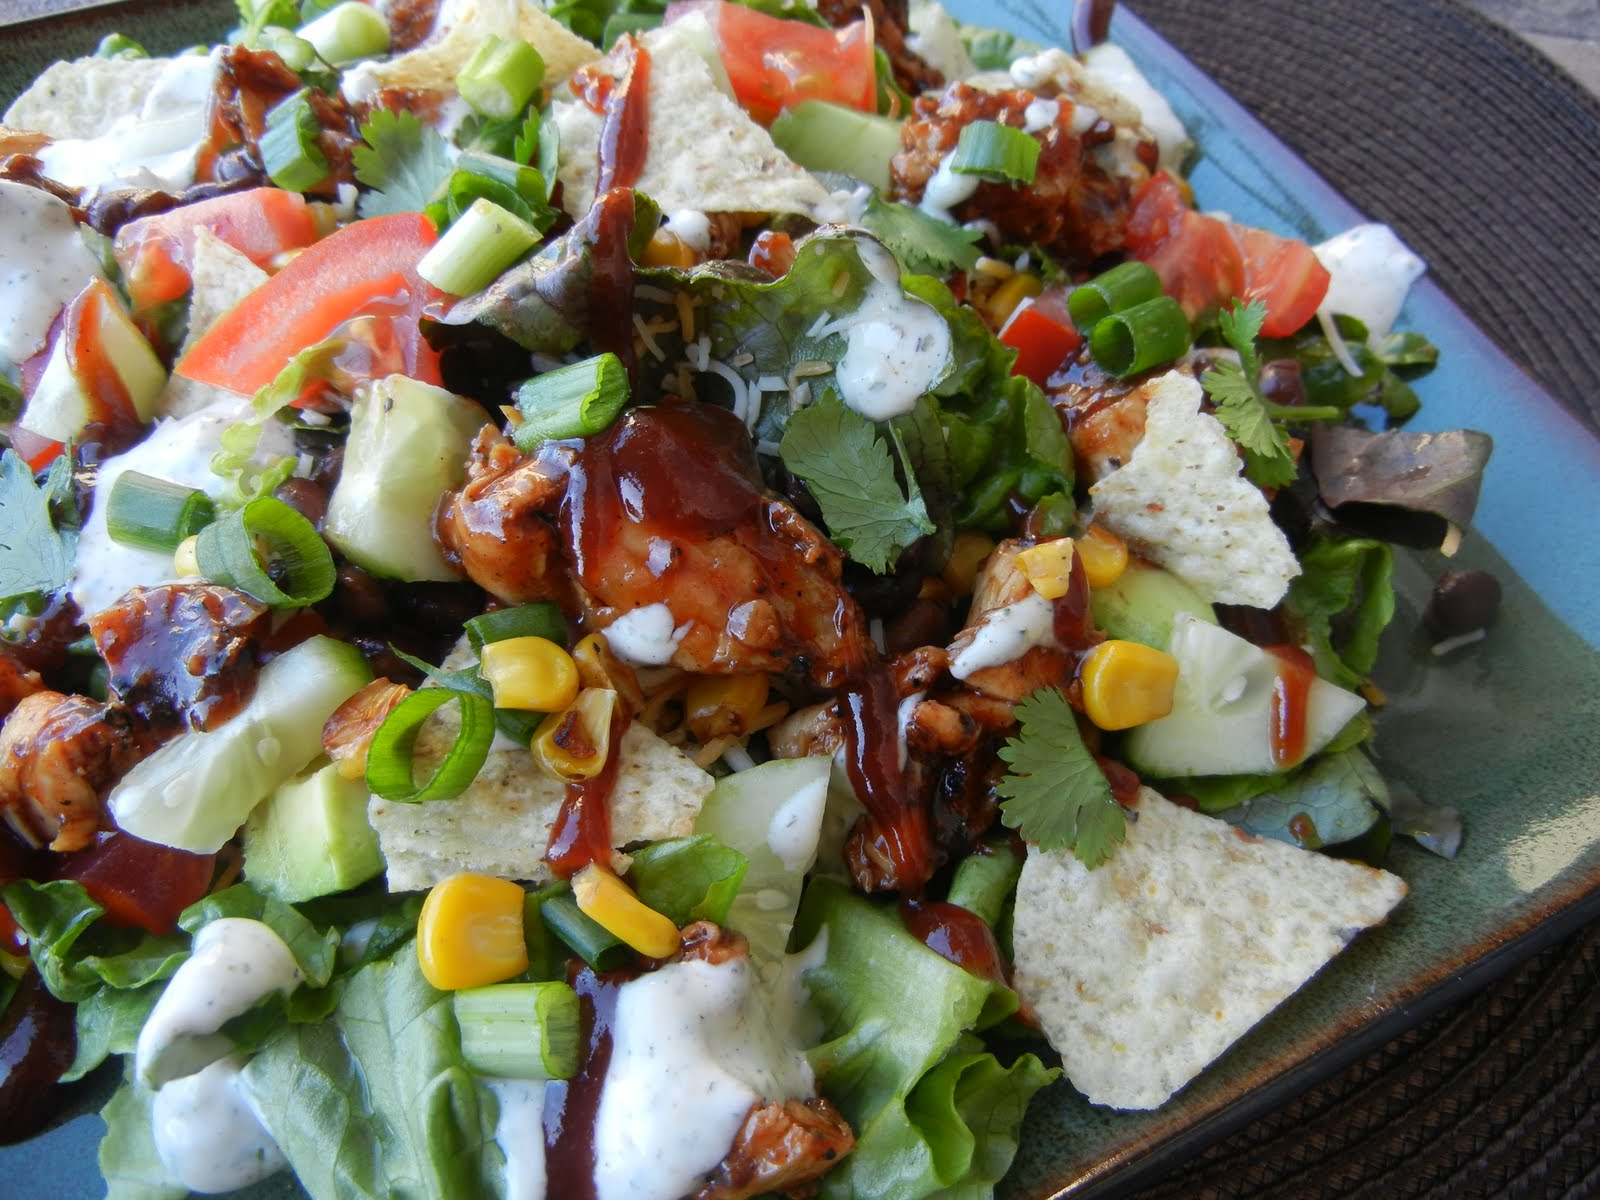 Chicken Kitchen Chop Chop deals to meals: california pizza kitchen bbq chicken chopped salad